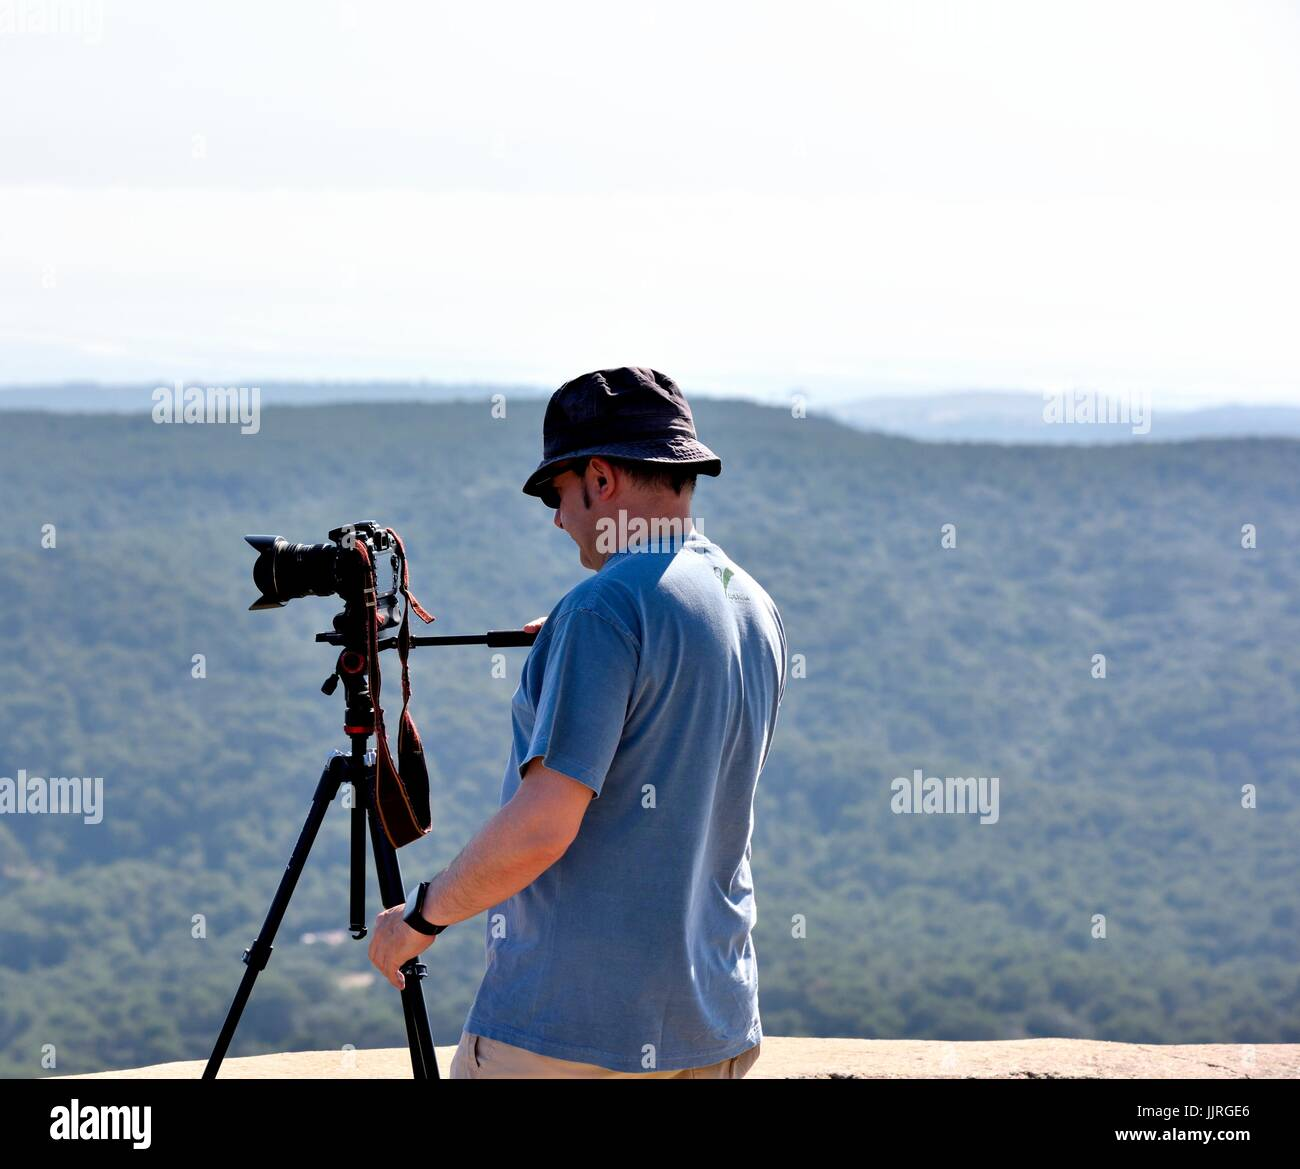 Man using SLR dIgital camera on a tripod - Stock Image